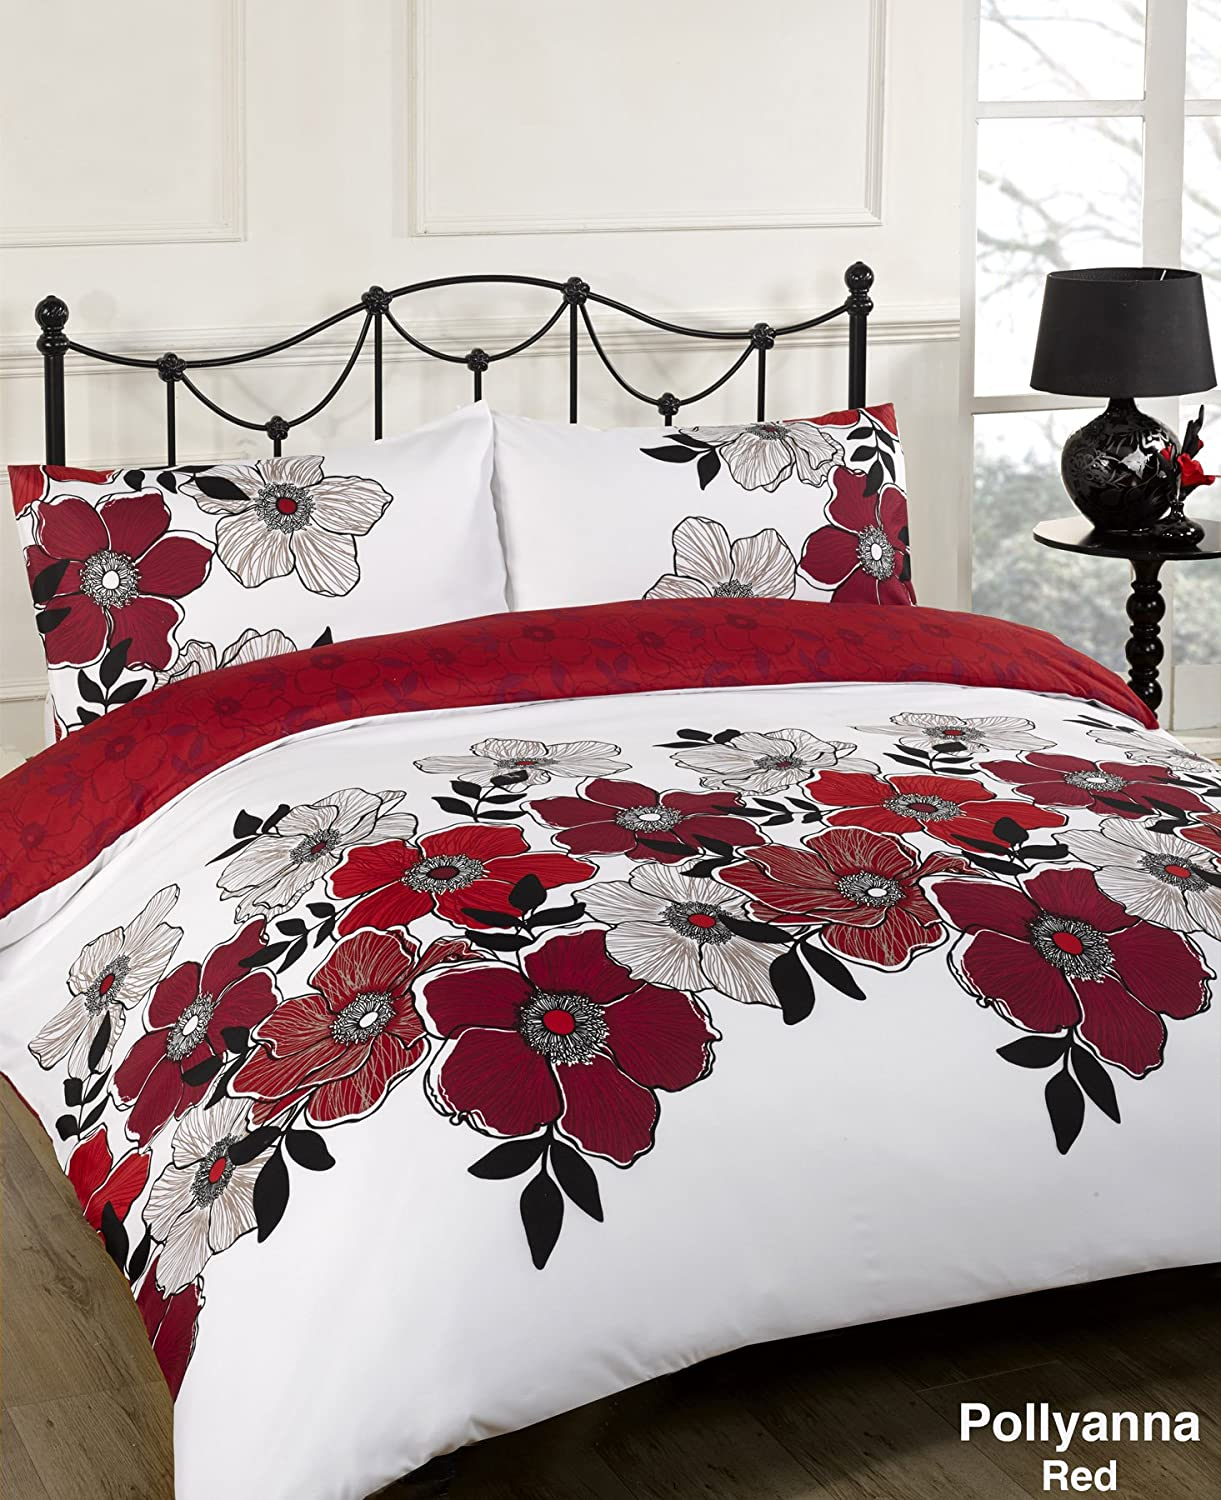 bedding s reversible duvet poppies poppy wild set amp cream loading is itm red image cover check